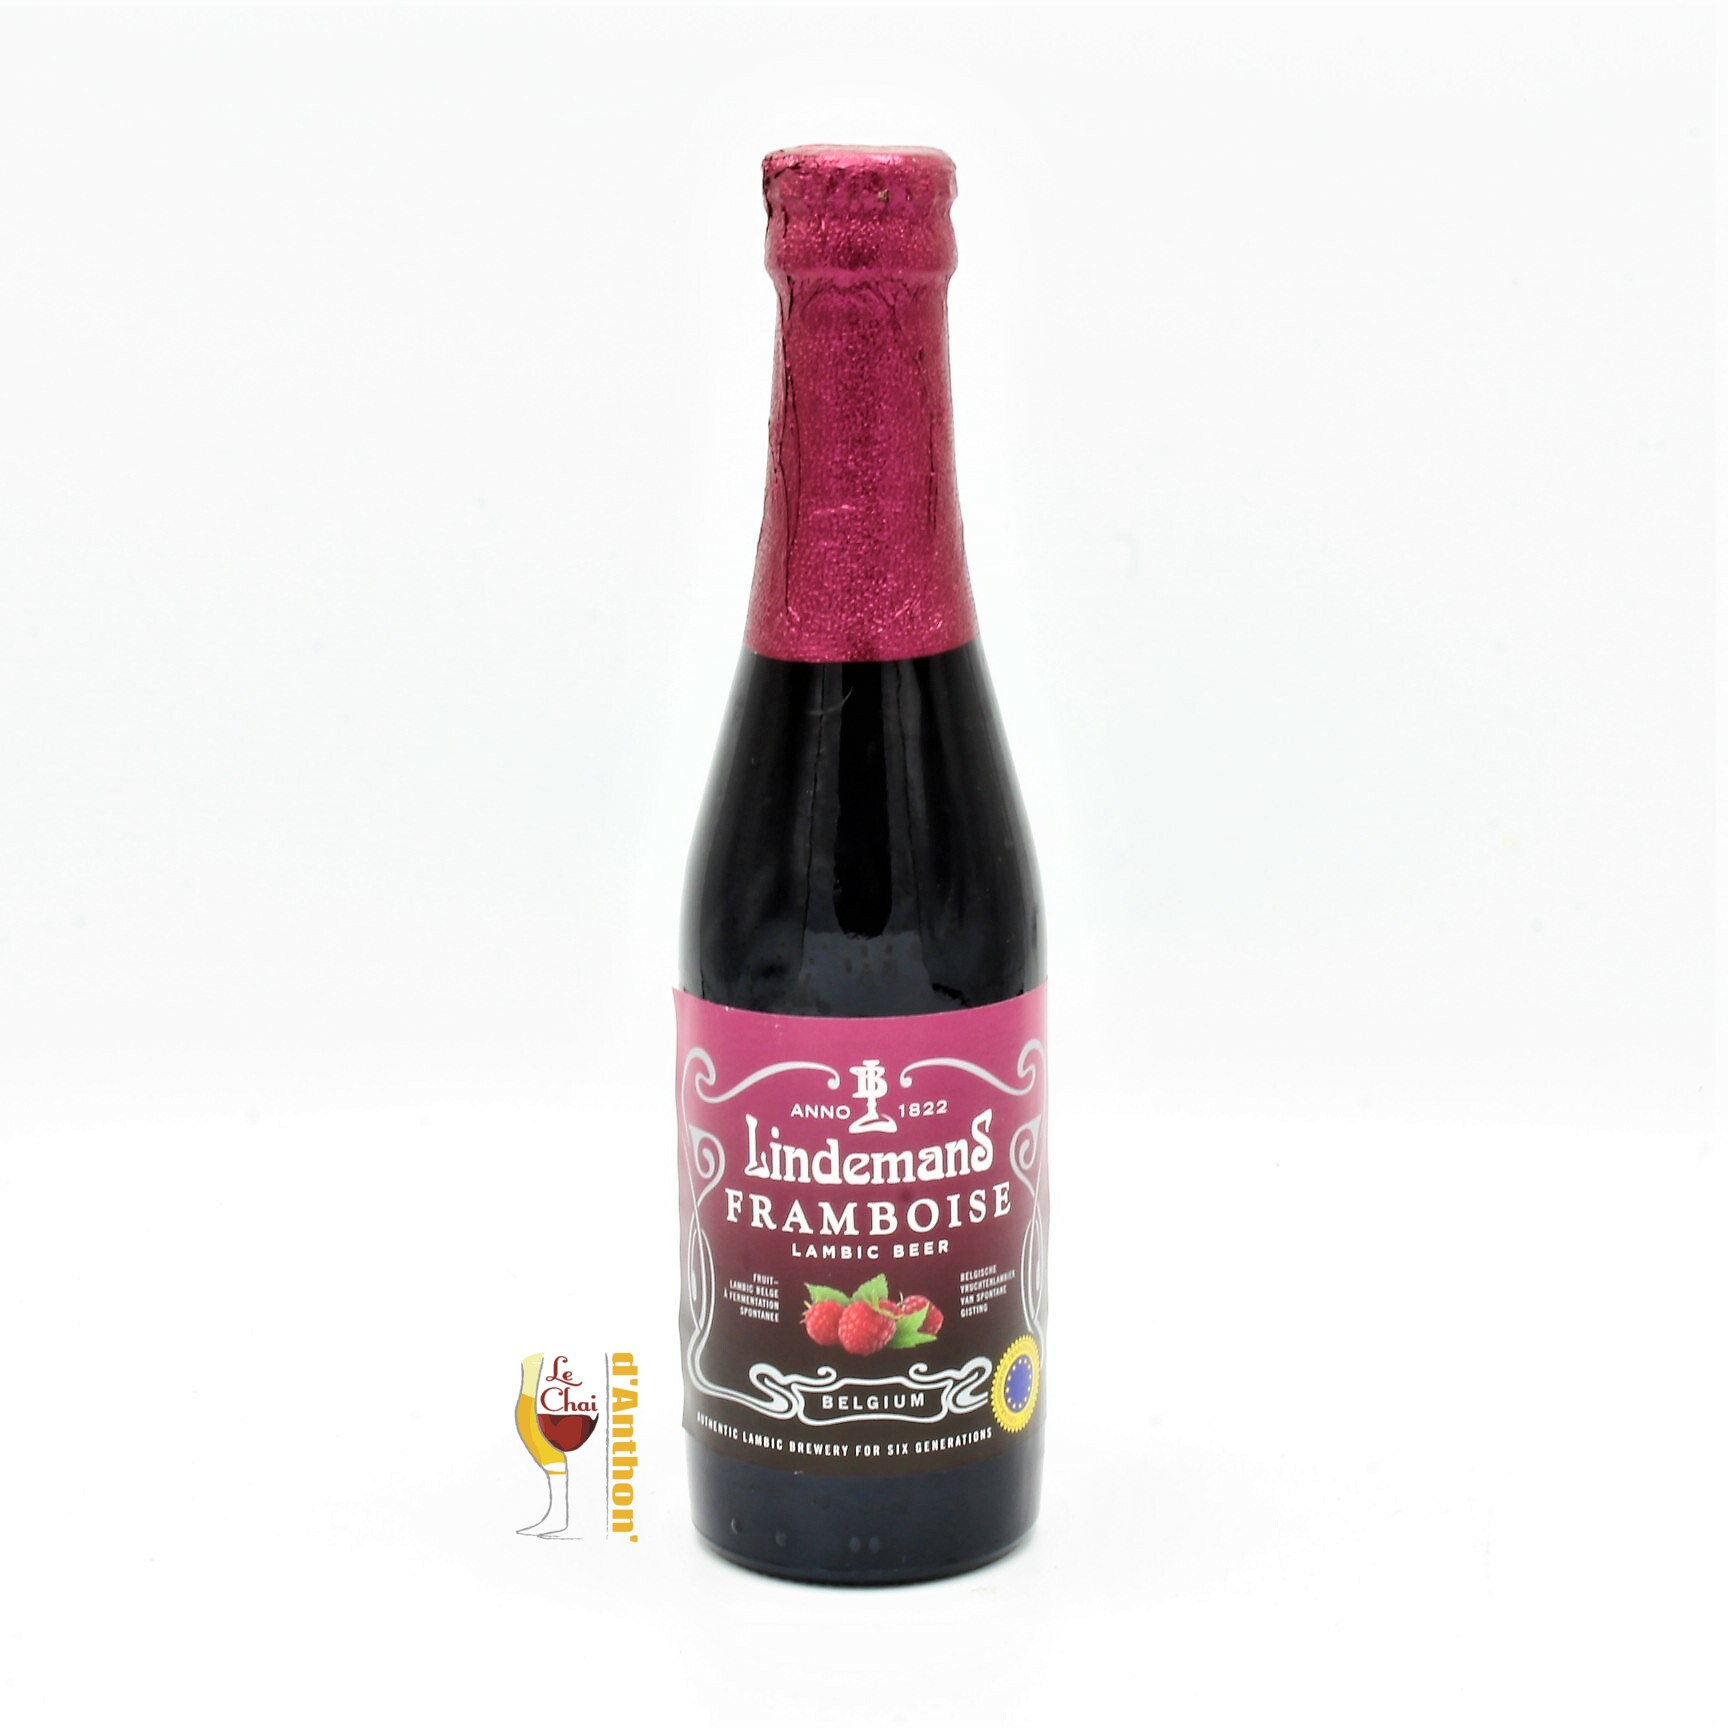 Le Chai D&826.jpg039;Anthon Biere Bouteille Aromatisee Brasserie Lindemans Framboise Belge 826